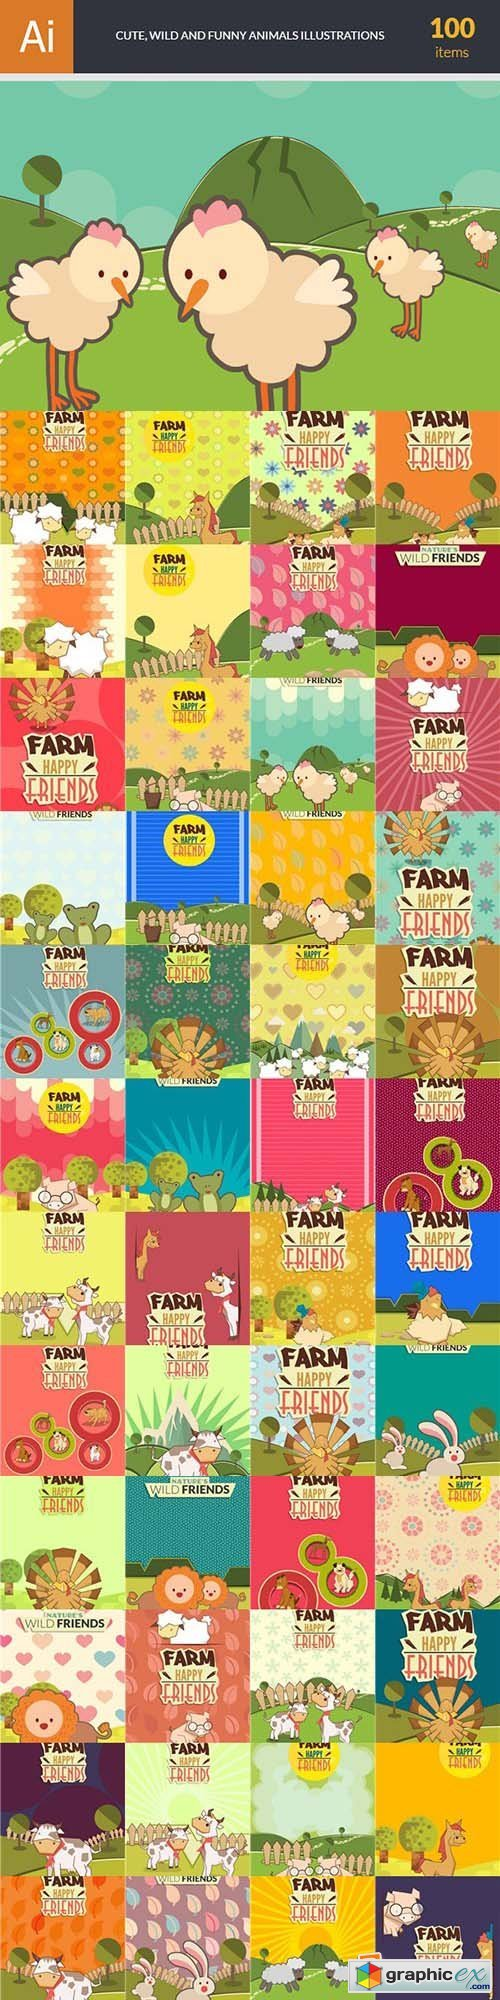 Cute Wild and Funny Animals Illustrations Pack 100xEPS